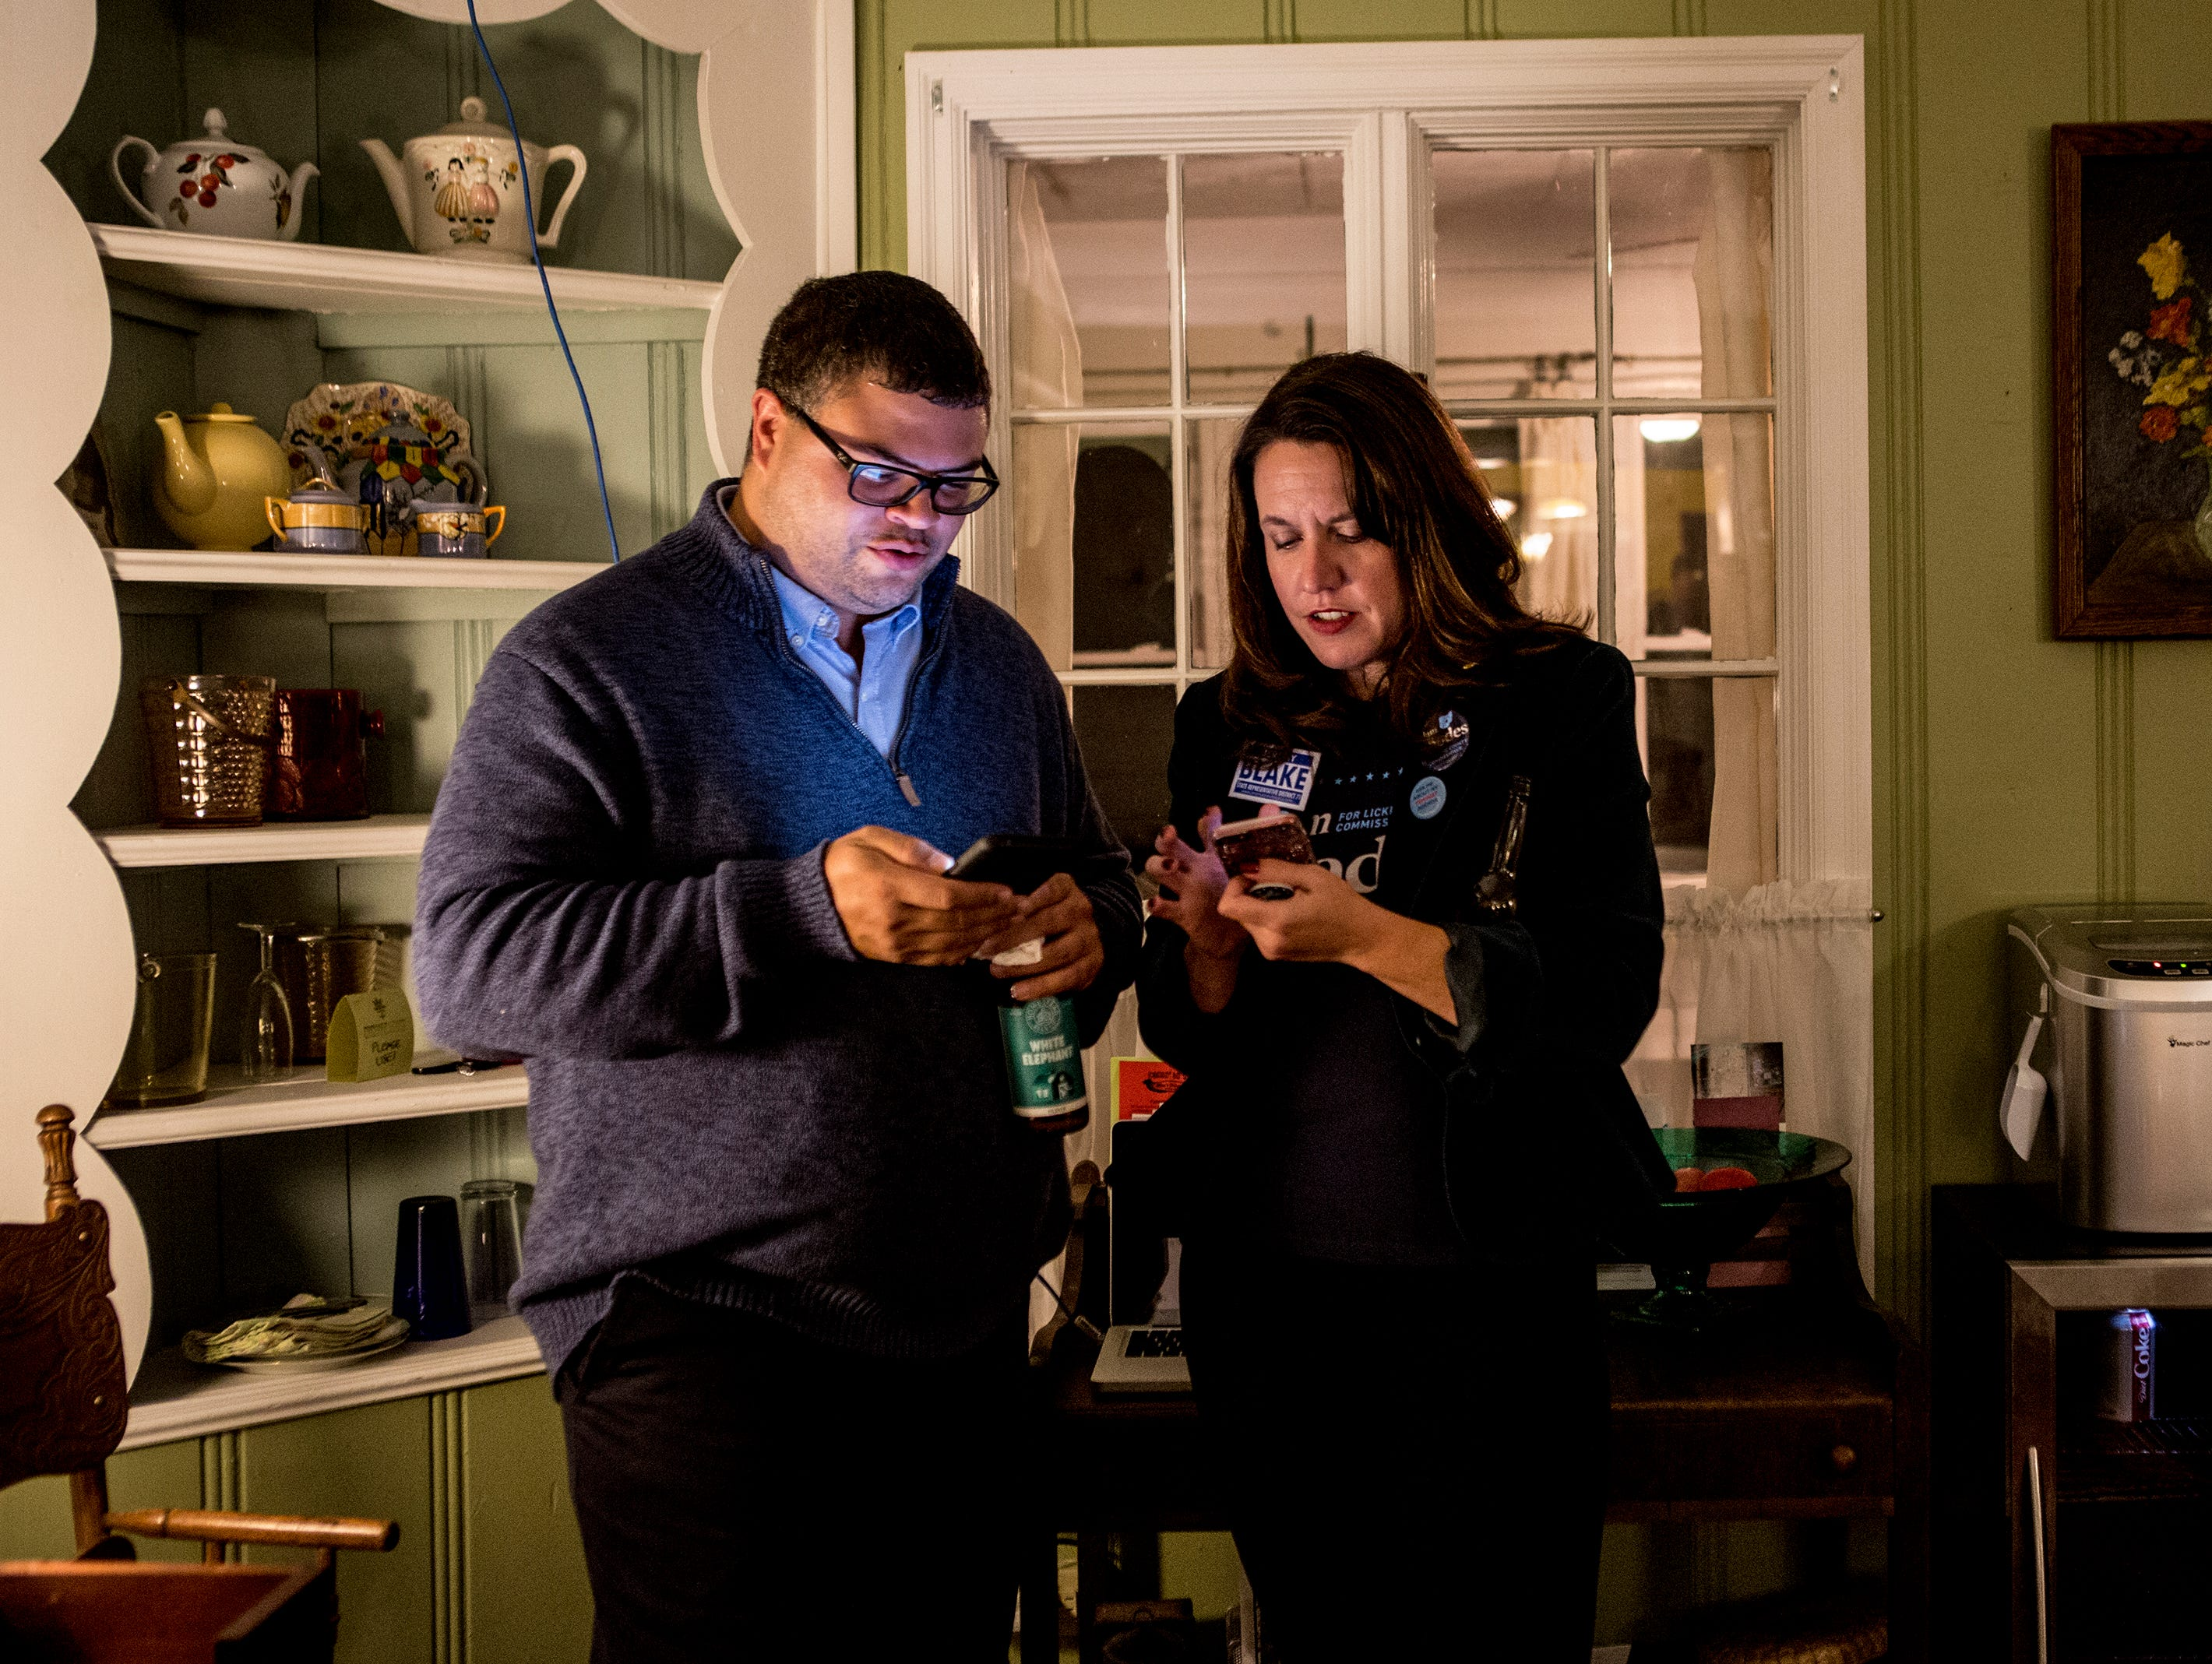 Democratic candidate for state representative, Jeremy Blake, and campaign manger, Michelle Newman, look up local results online during the Democratic election watch party Tuesday evening. Blake lost the election to incumbent Scott Ryan.